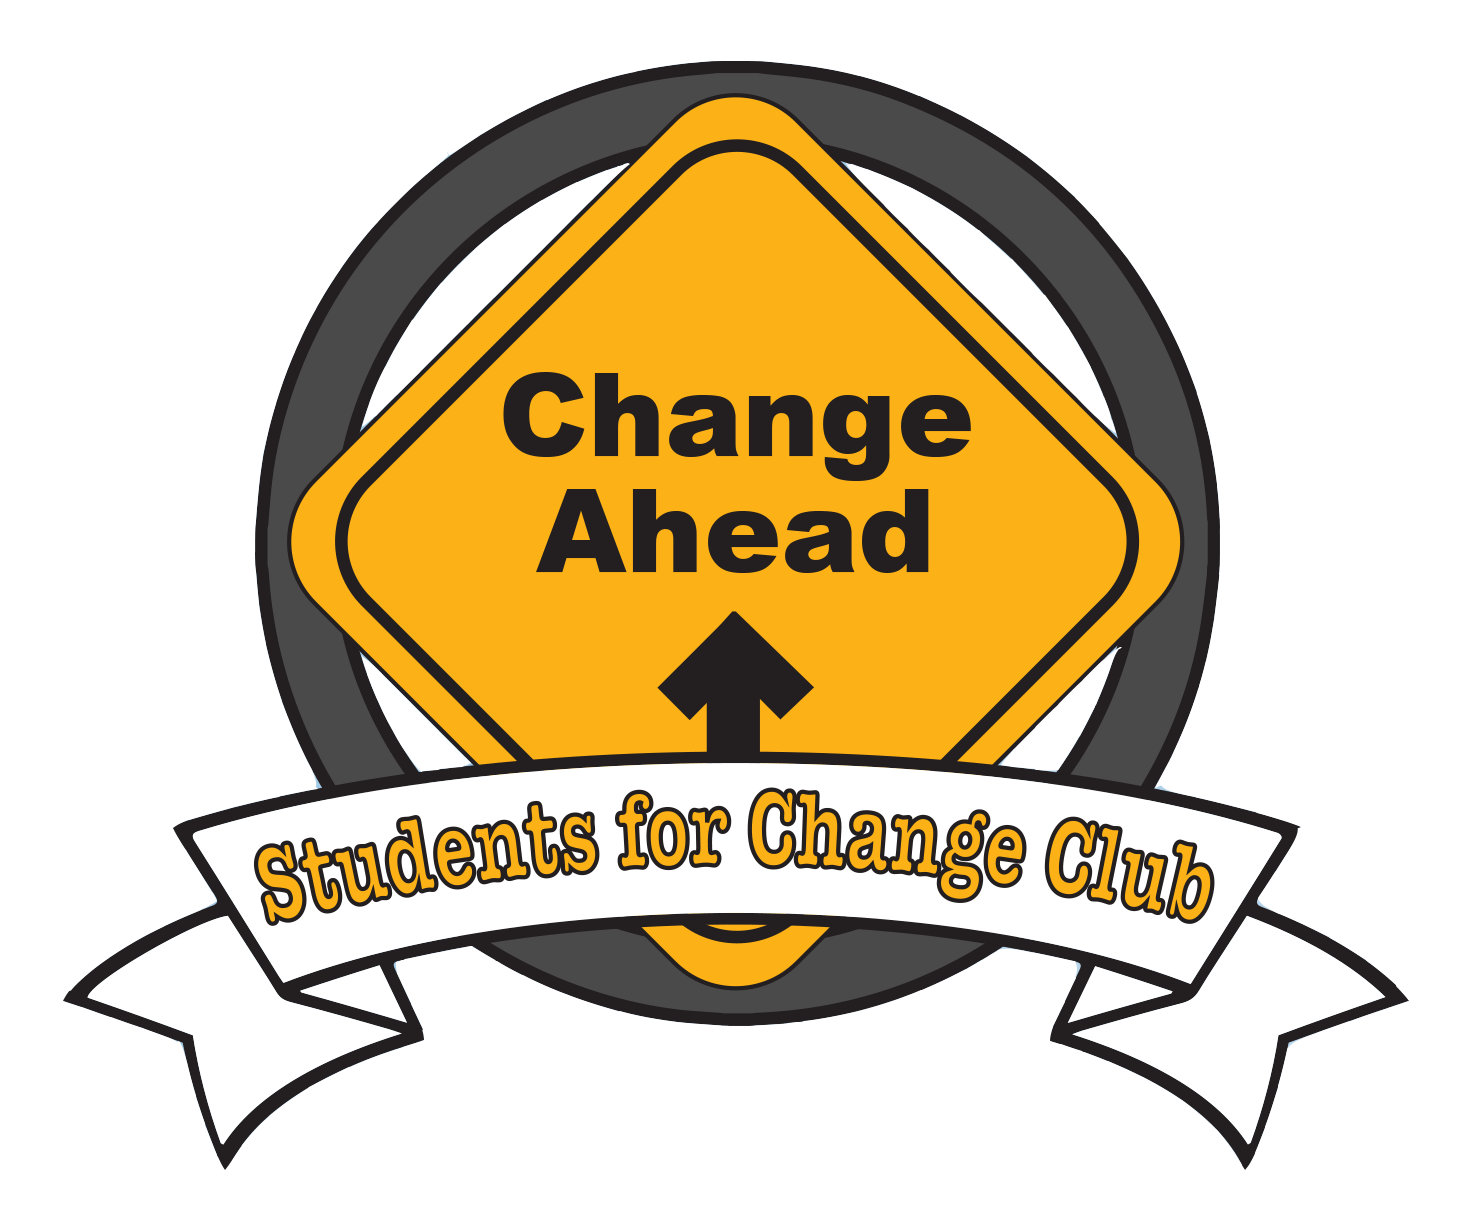 Change Ahead  - Students for change club logo